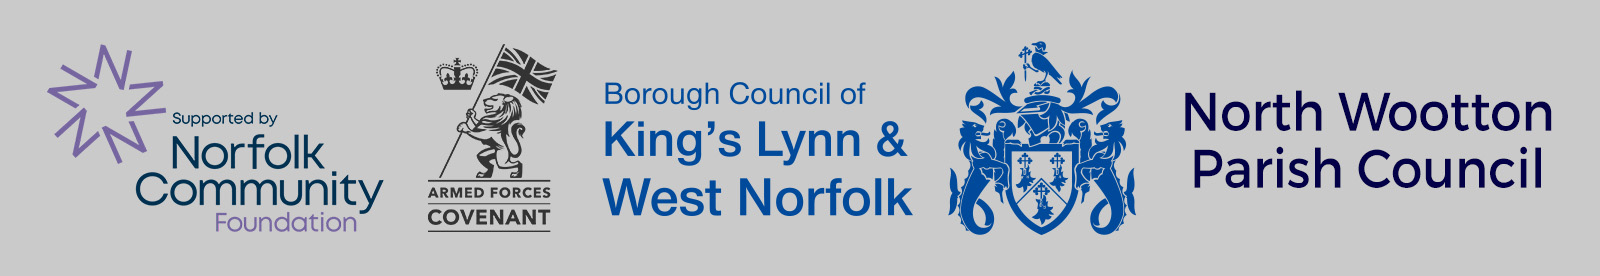 VJ Day Celebration North Wootton Village Hall Kings Lynn Norfolk August 2021 Event Supporters